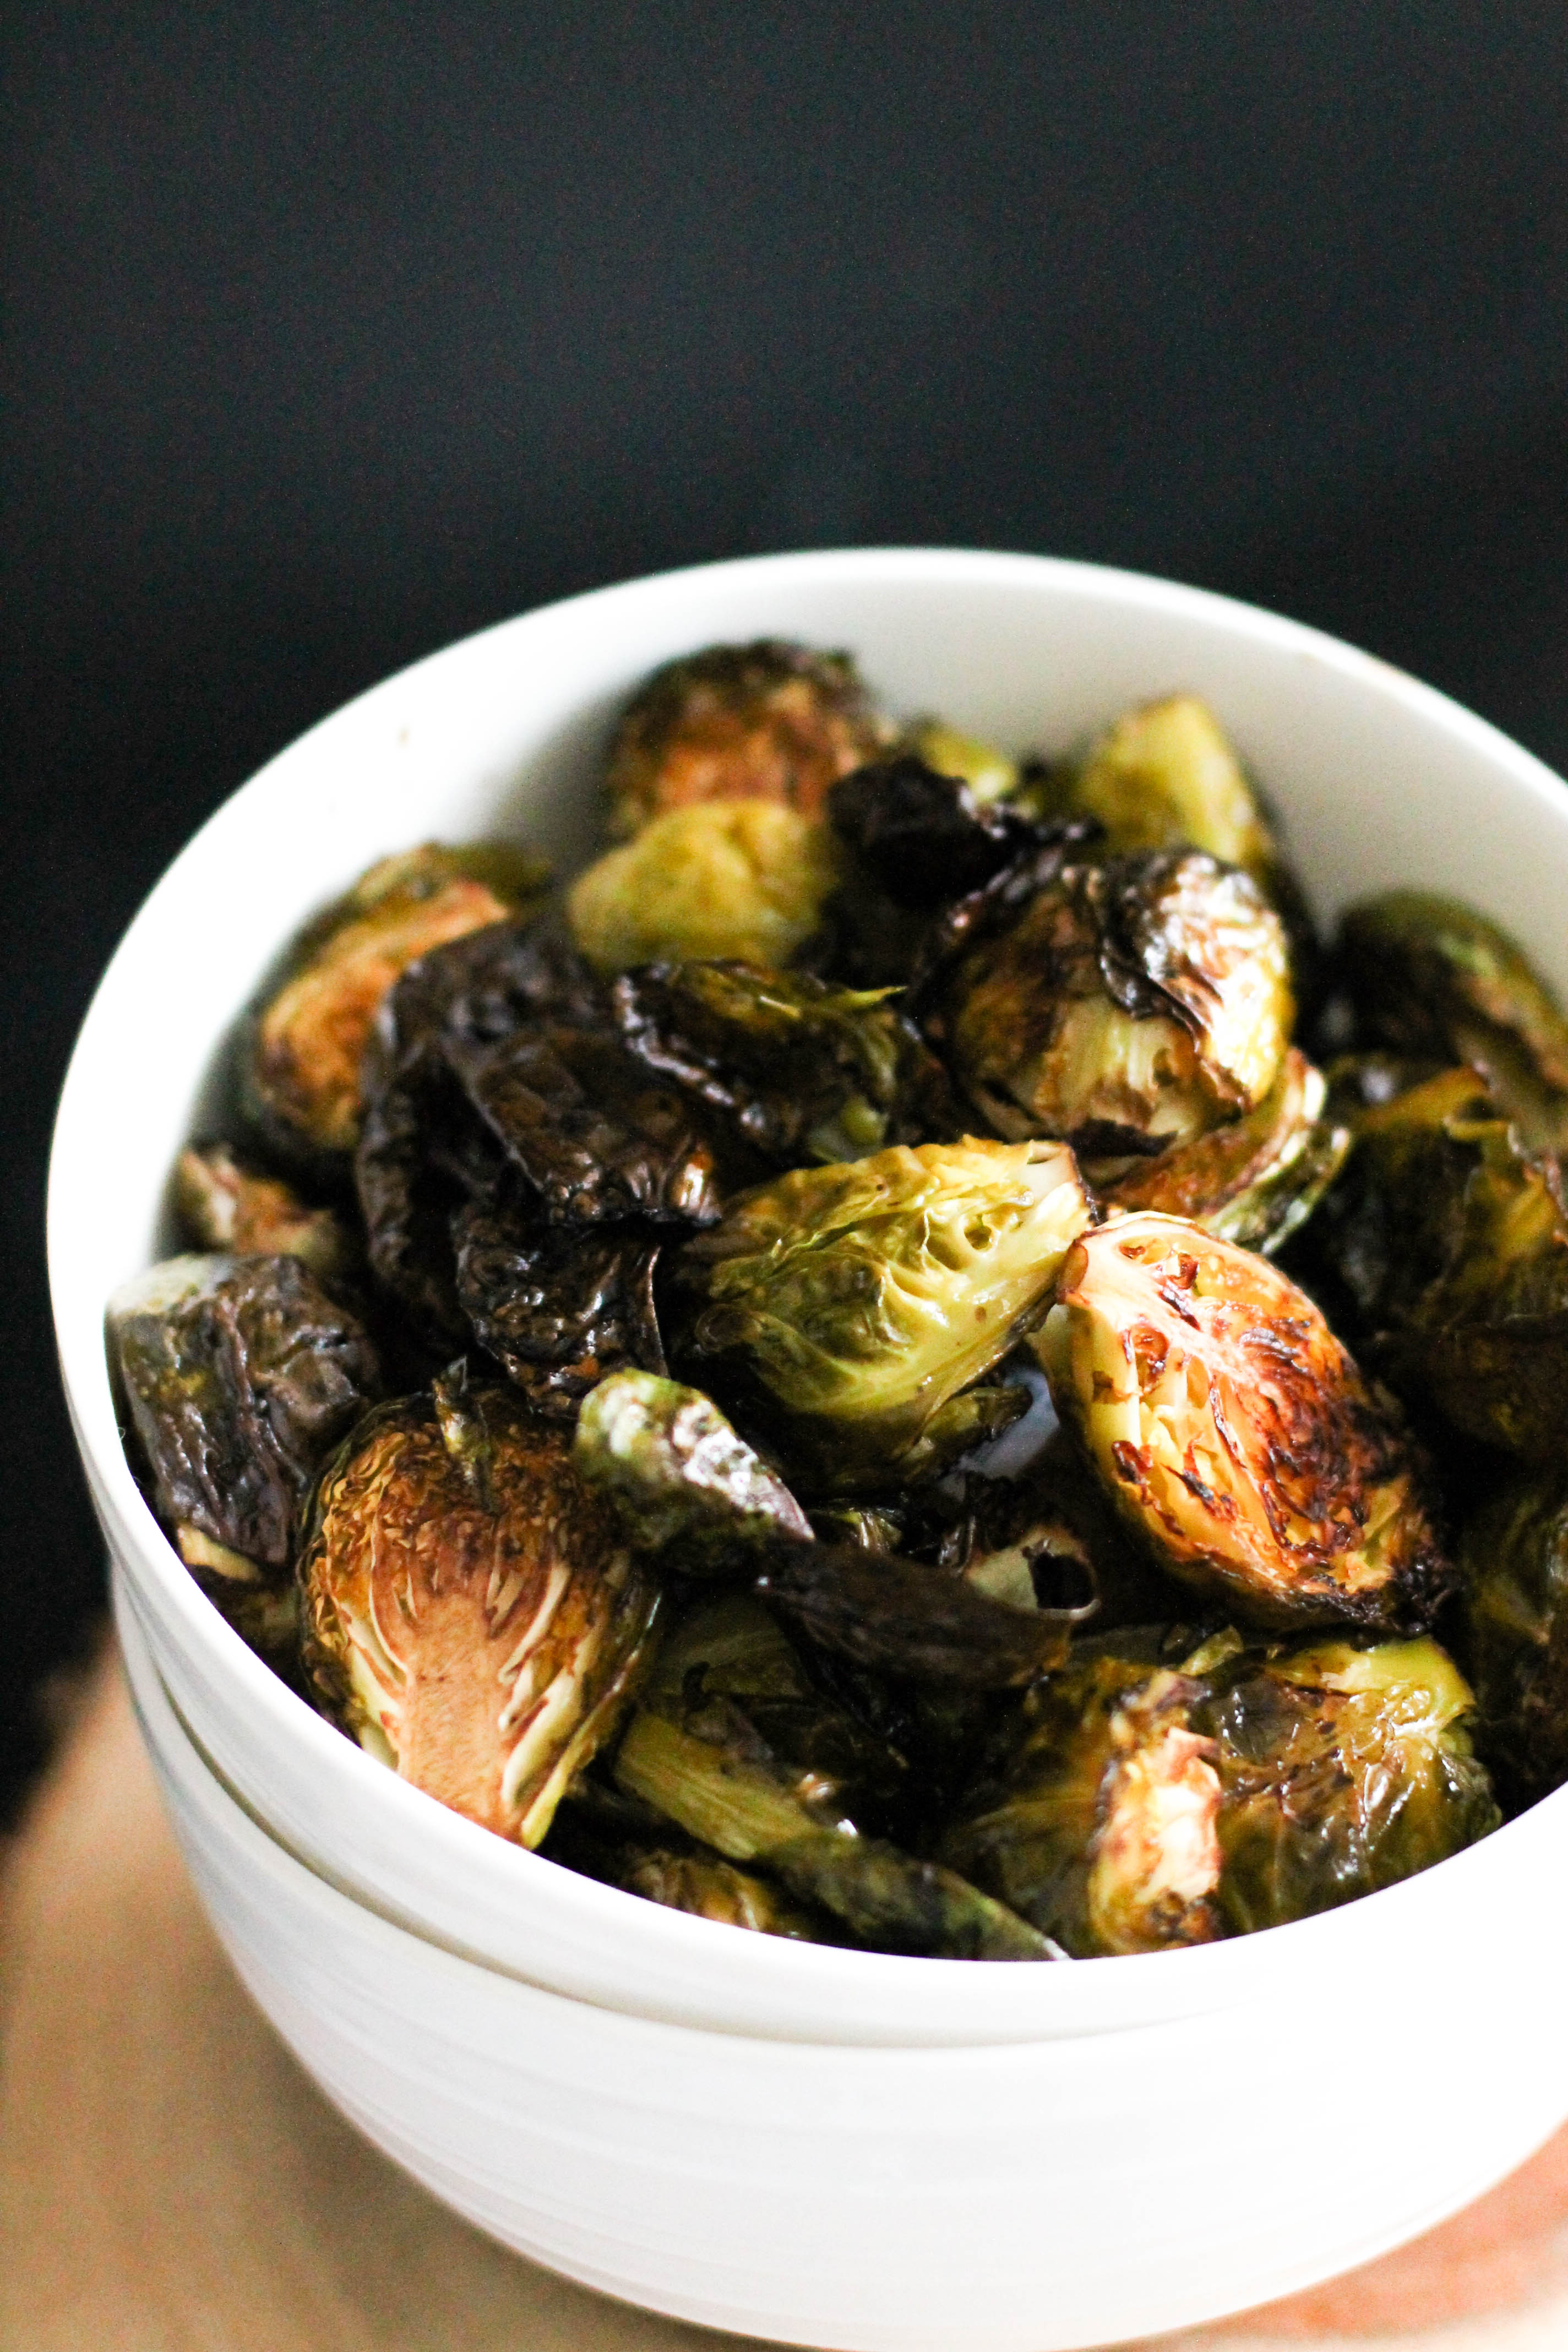 These crispy balsamic roasted brussels sprouts are the perfect side dish, and add tons of flavor to a meal. They're crispy, gluten free, and ready in under an hour.